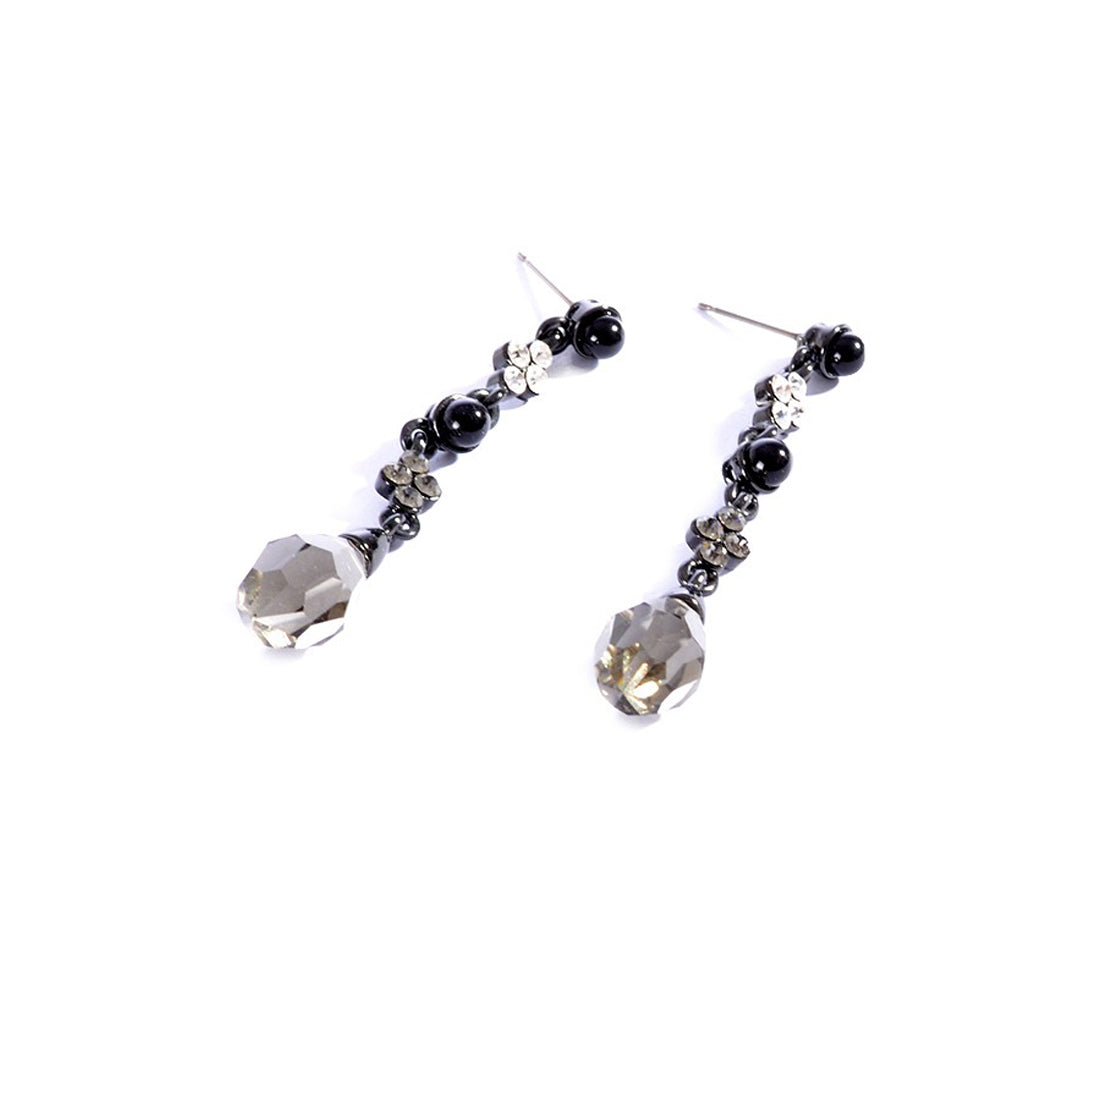 Earrings color silver & Black -747